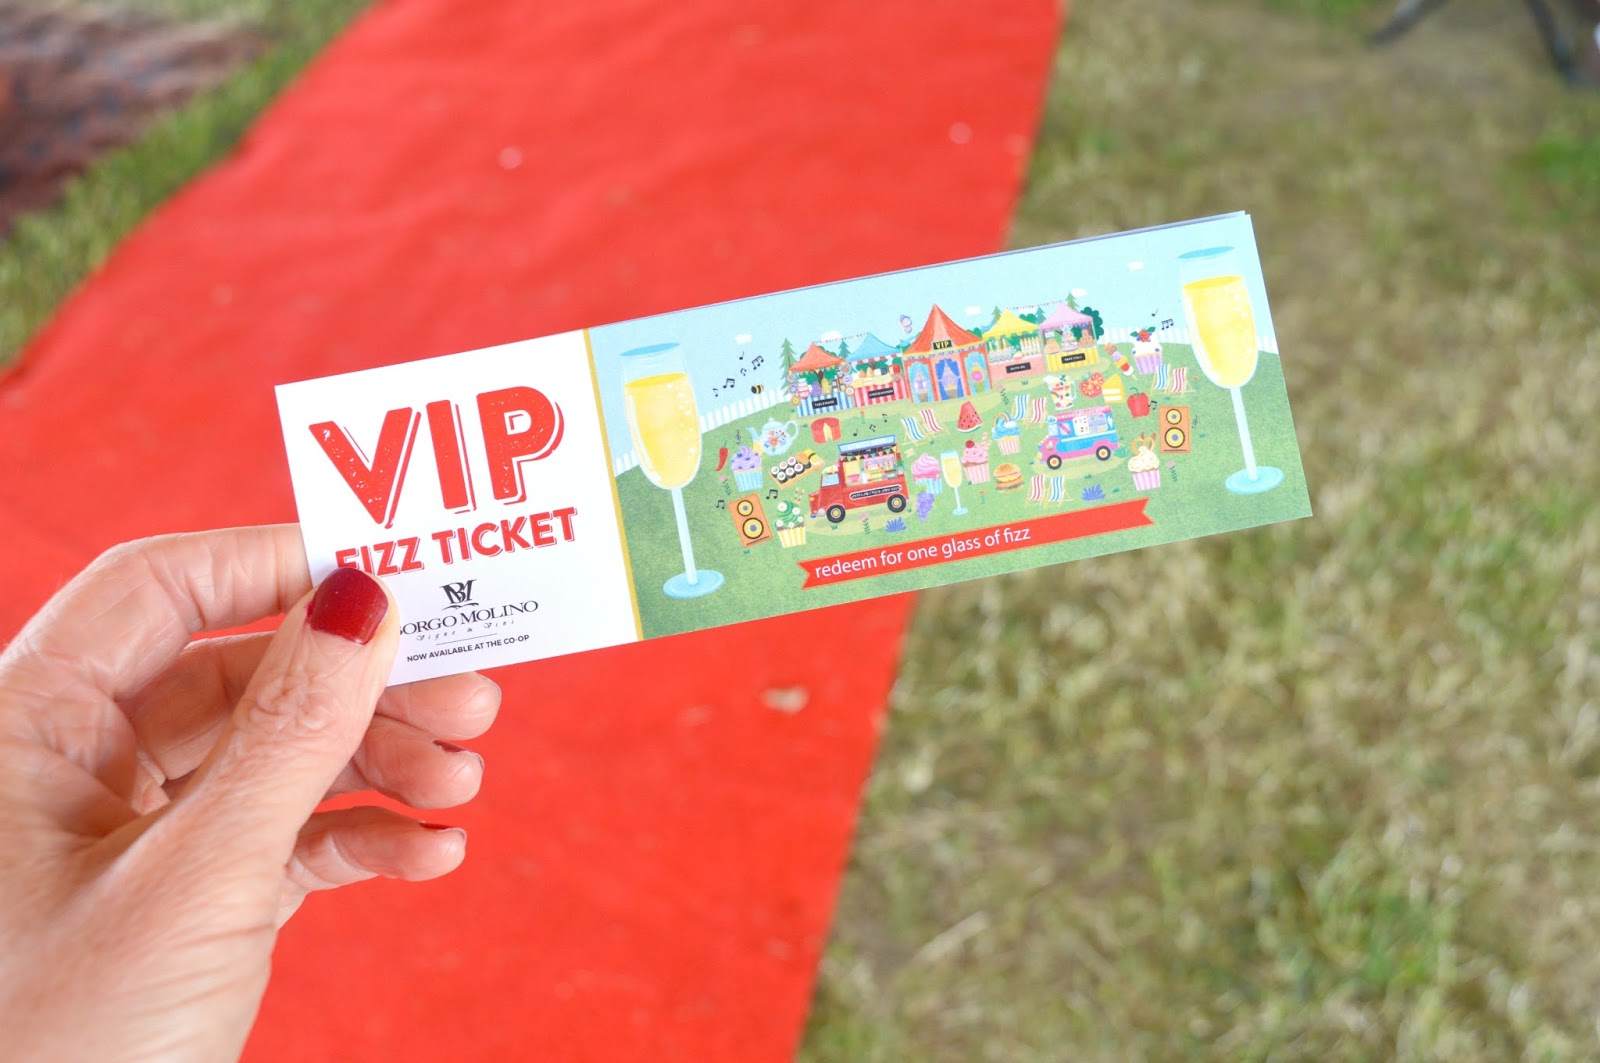 The Foodies Festival - VIP